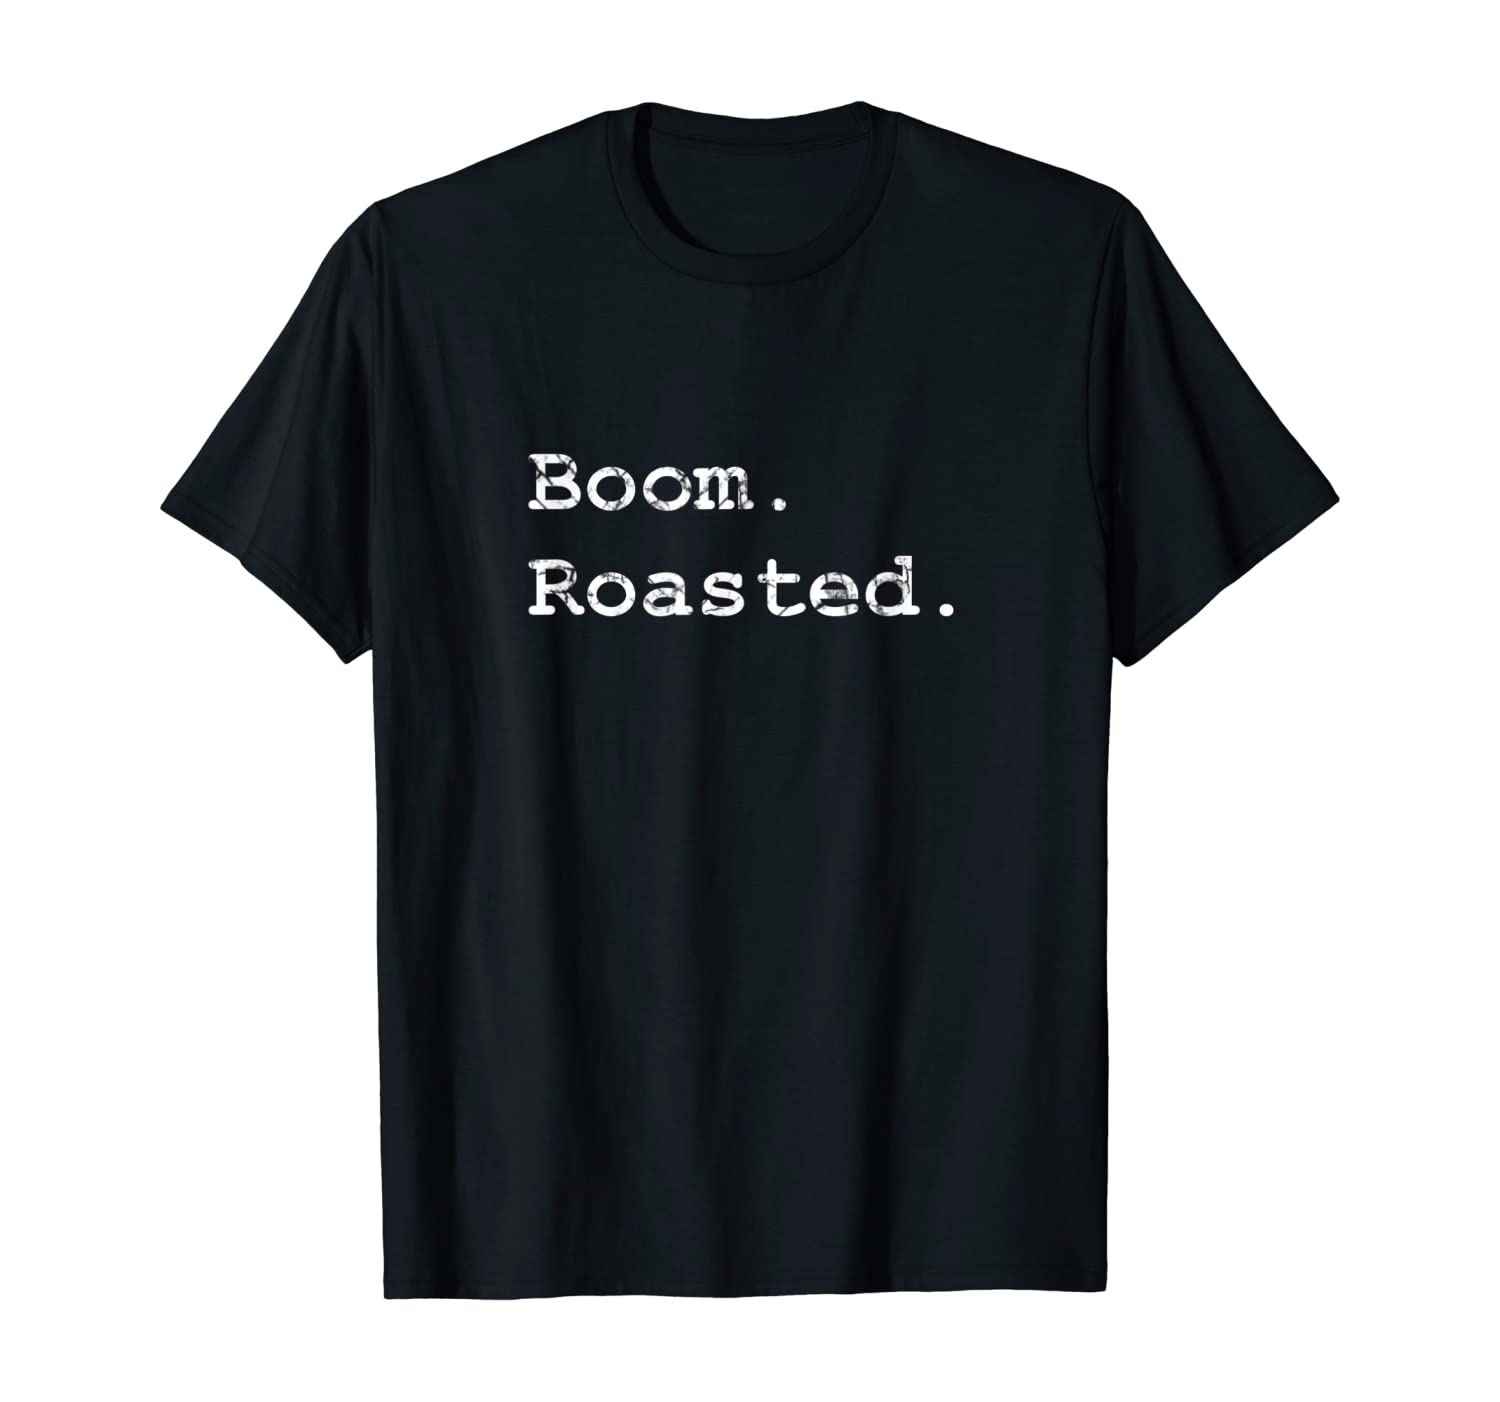 Boom. Roasted. T-Shirt